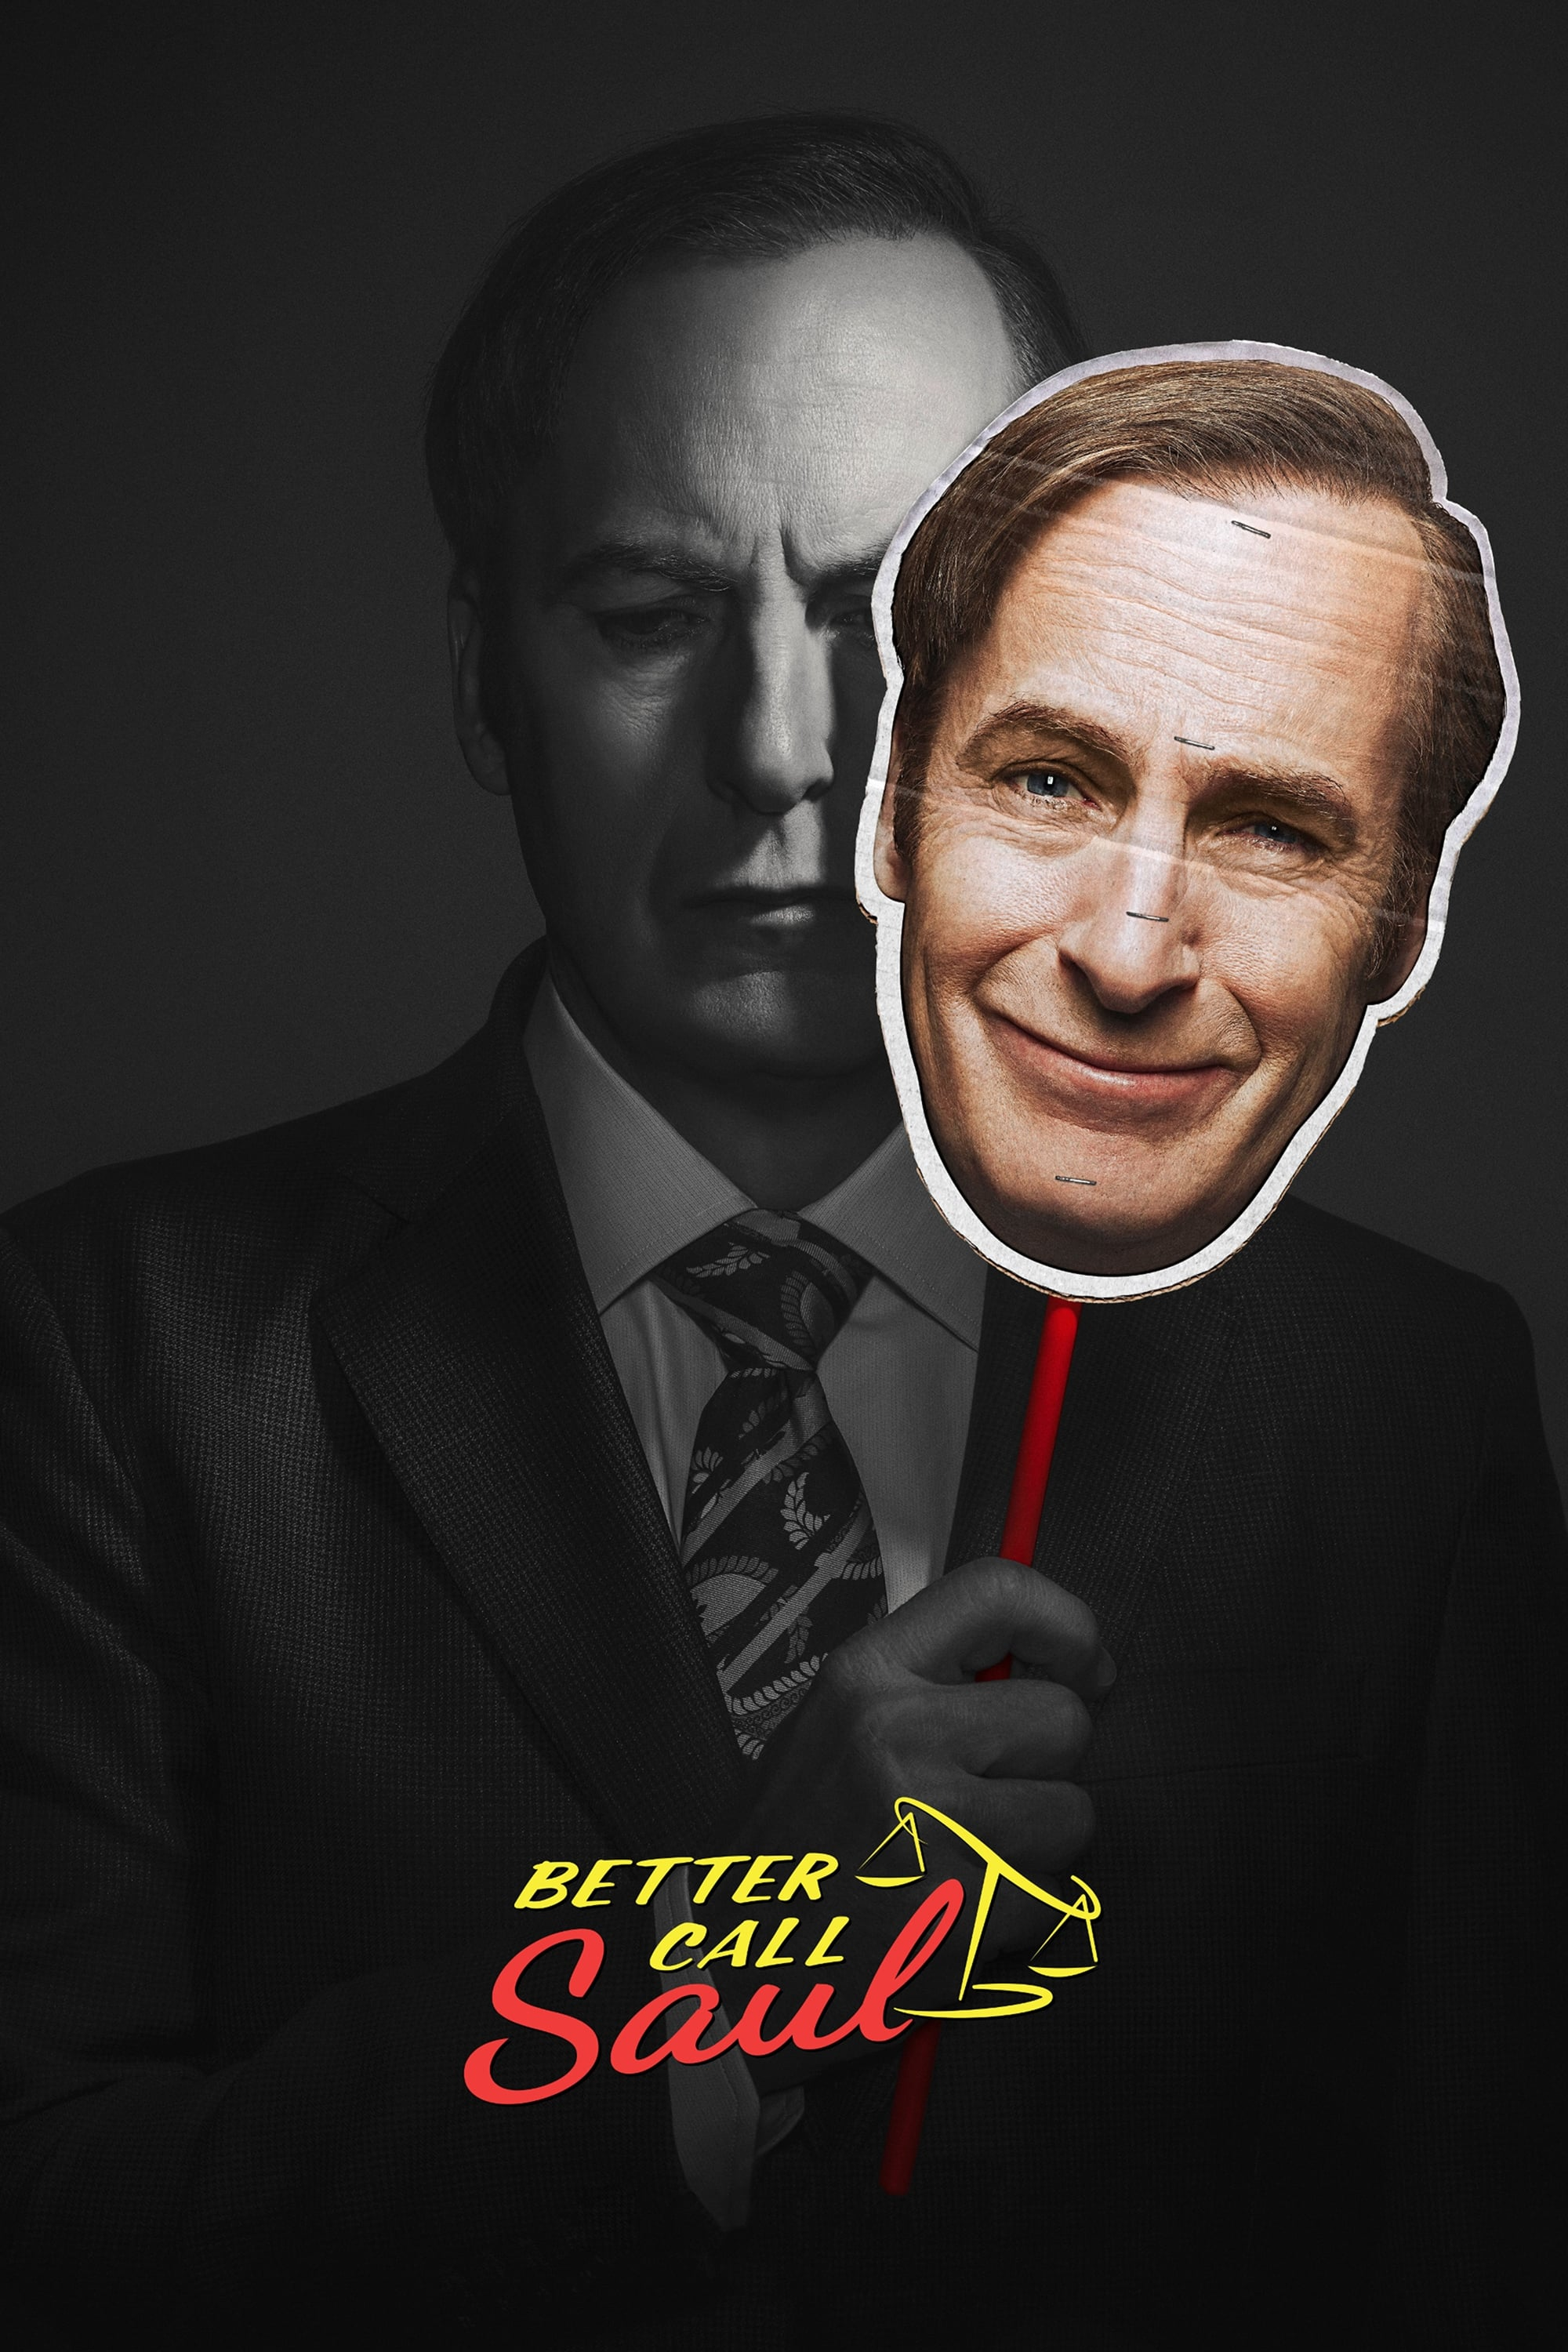 image for Better Call Saul